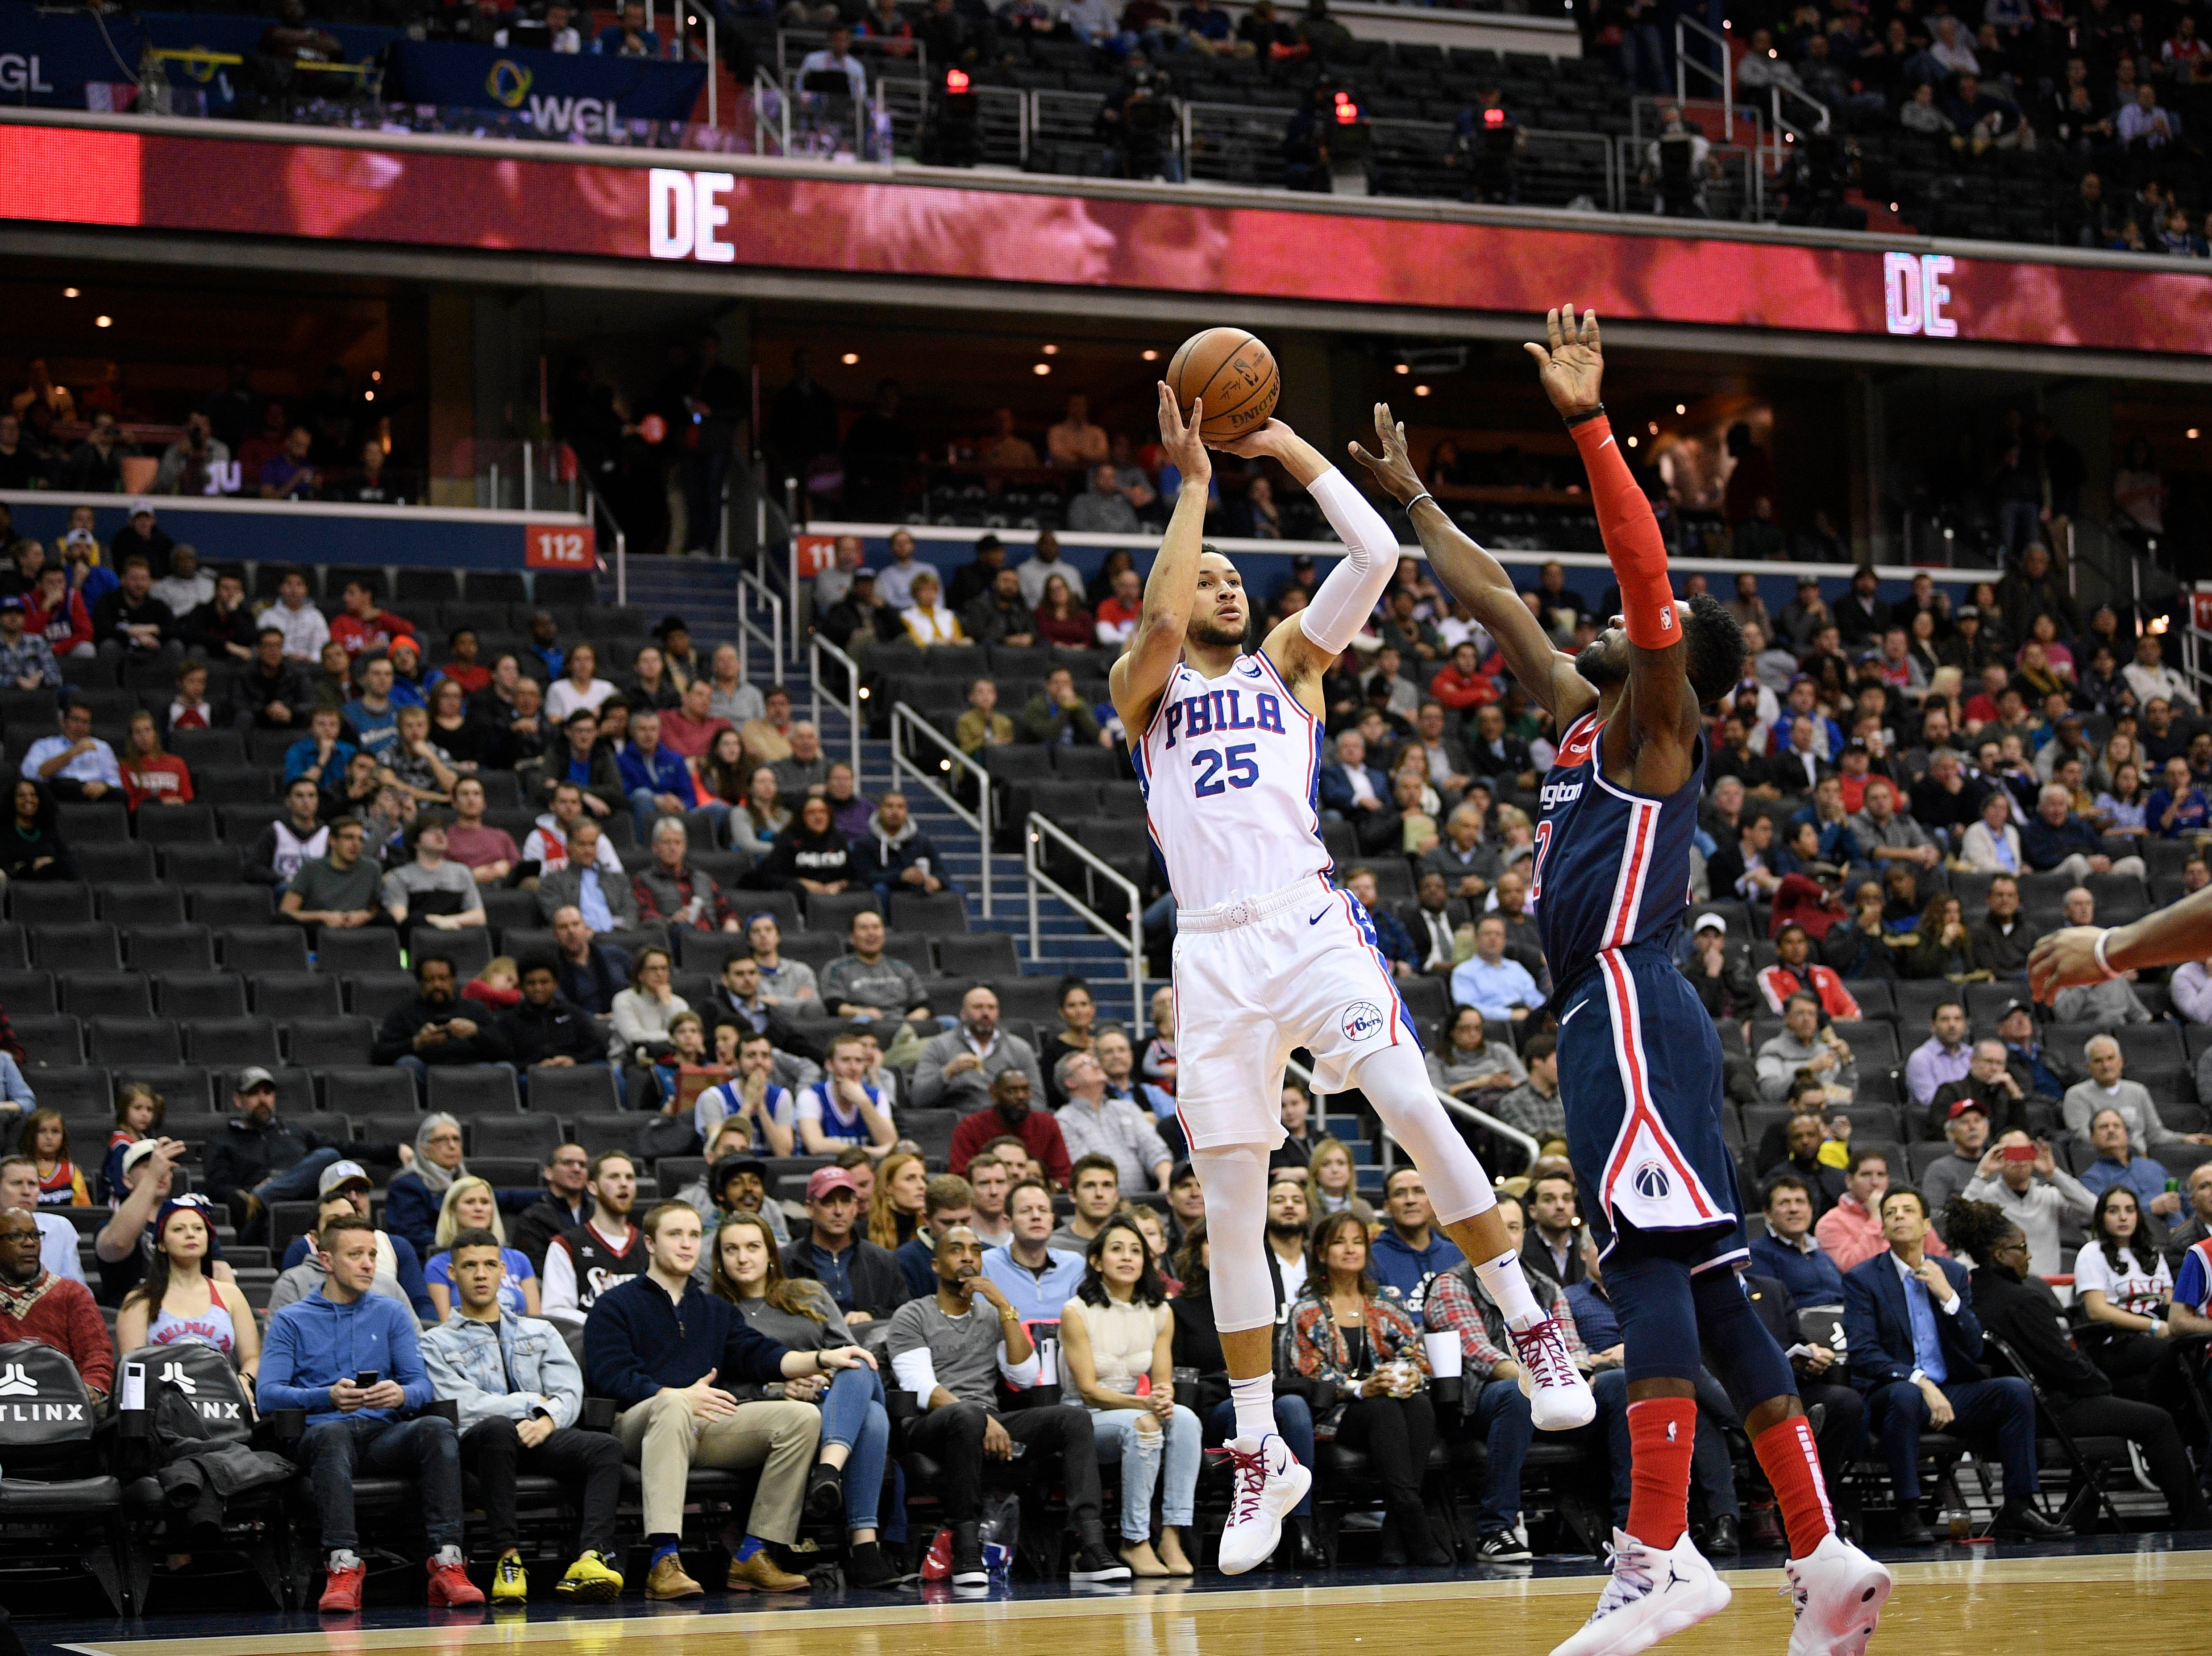 Philadelphia 76ers guard Ben Simmons (25) shoots against Washington Wizards forward Jeff Green, right, during the first half of an NBA basketball game, Wednesday, Jan. 9, 2019, in Washington. (AP Photo/Nick Wass)